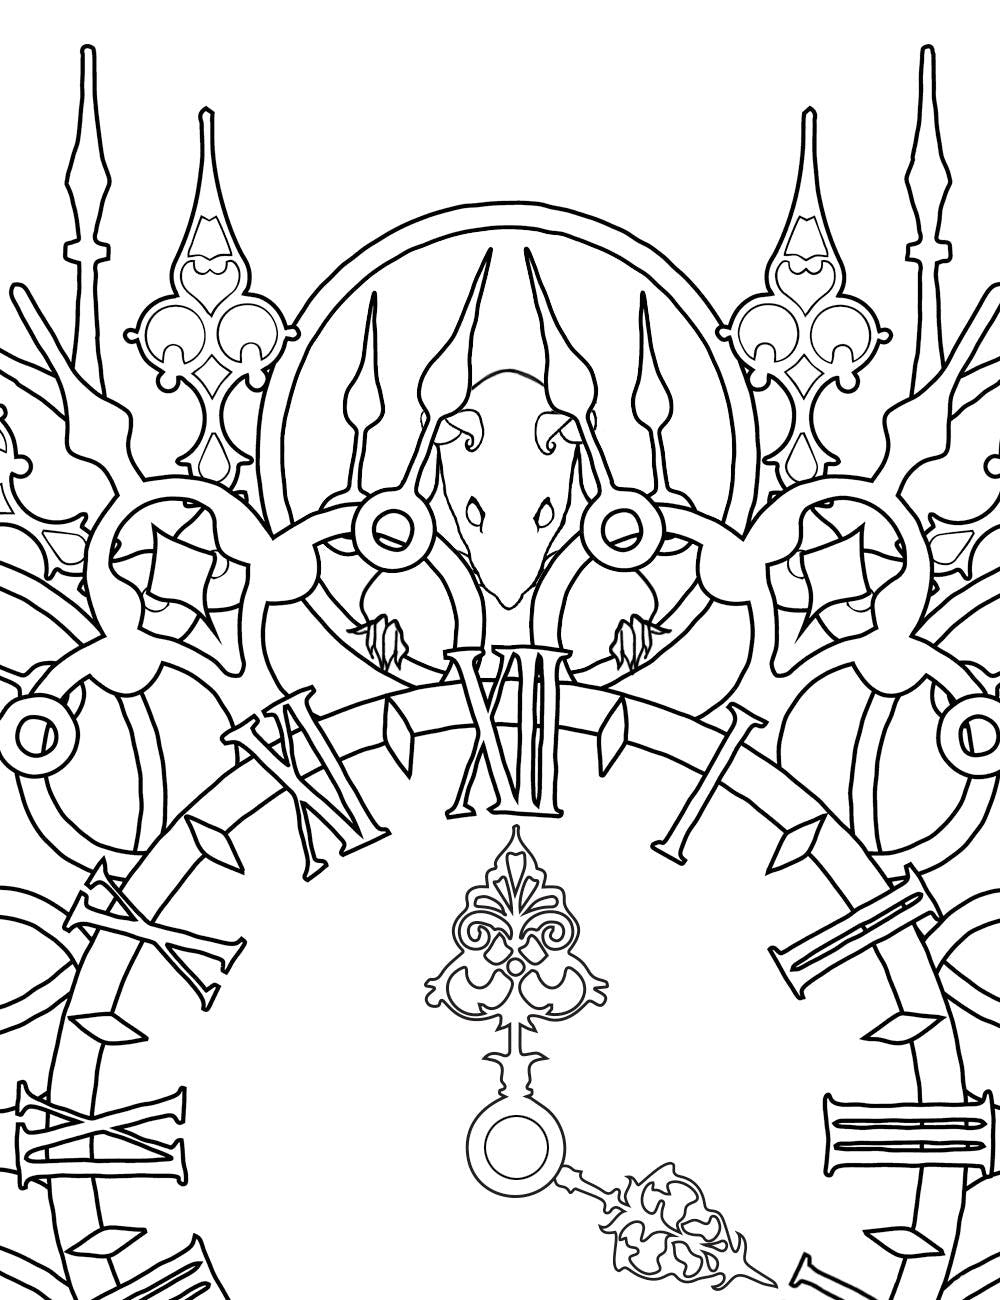 Asylum Coloring Book Page: Rat Clock